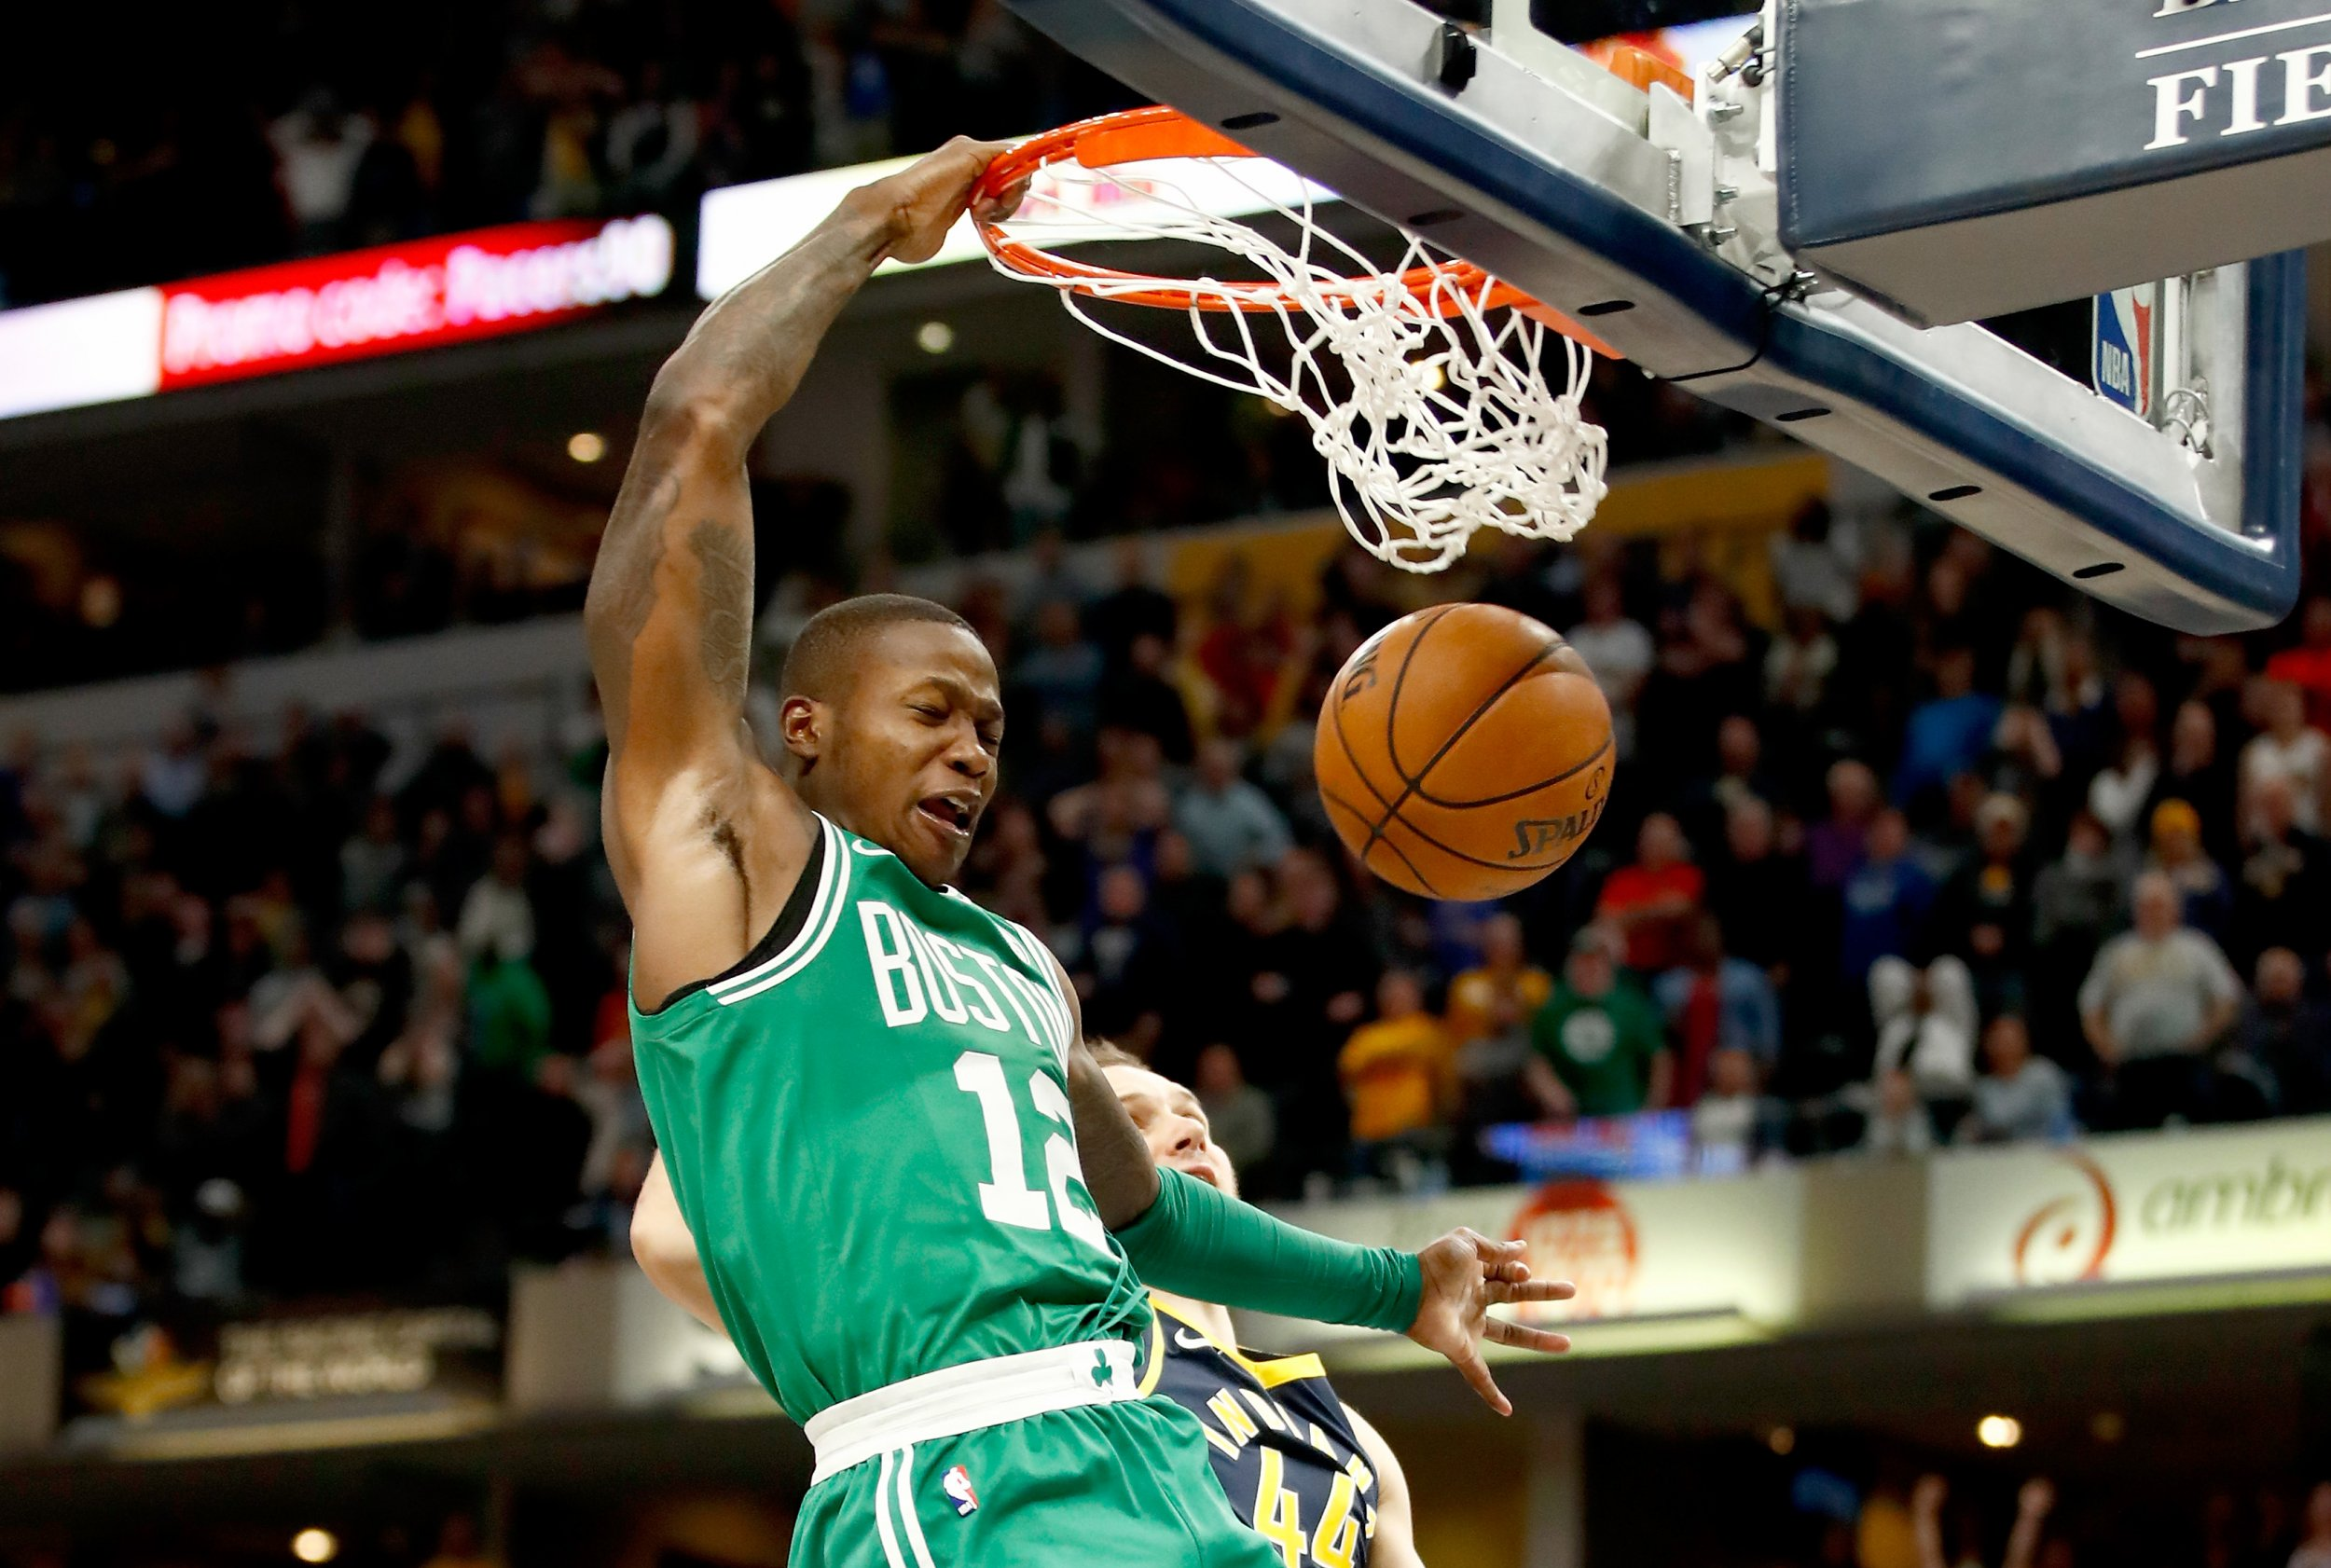 Terry Rozier of the Boston Celtics at Bankers Life Fieldhouse, Indianapolis, Indiana, December 18.